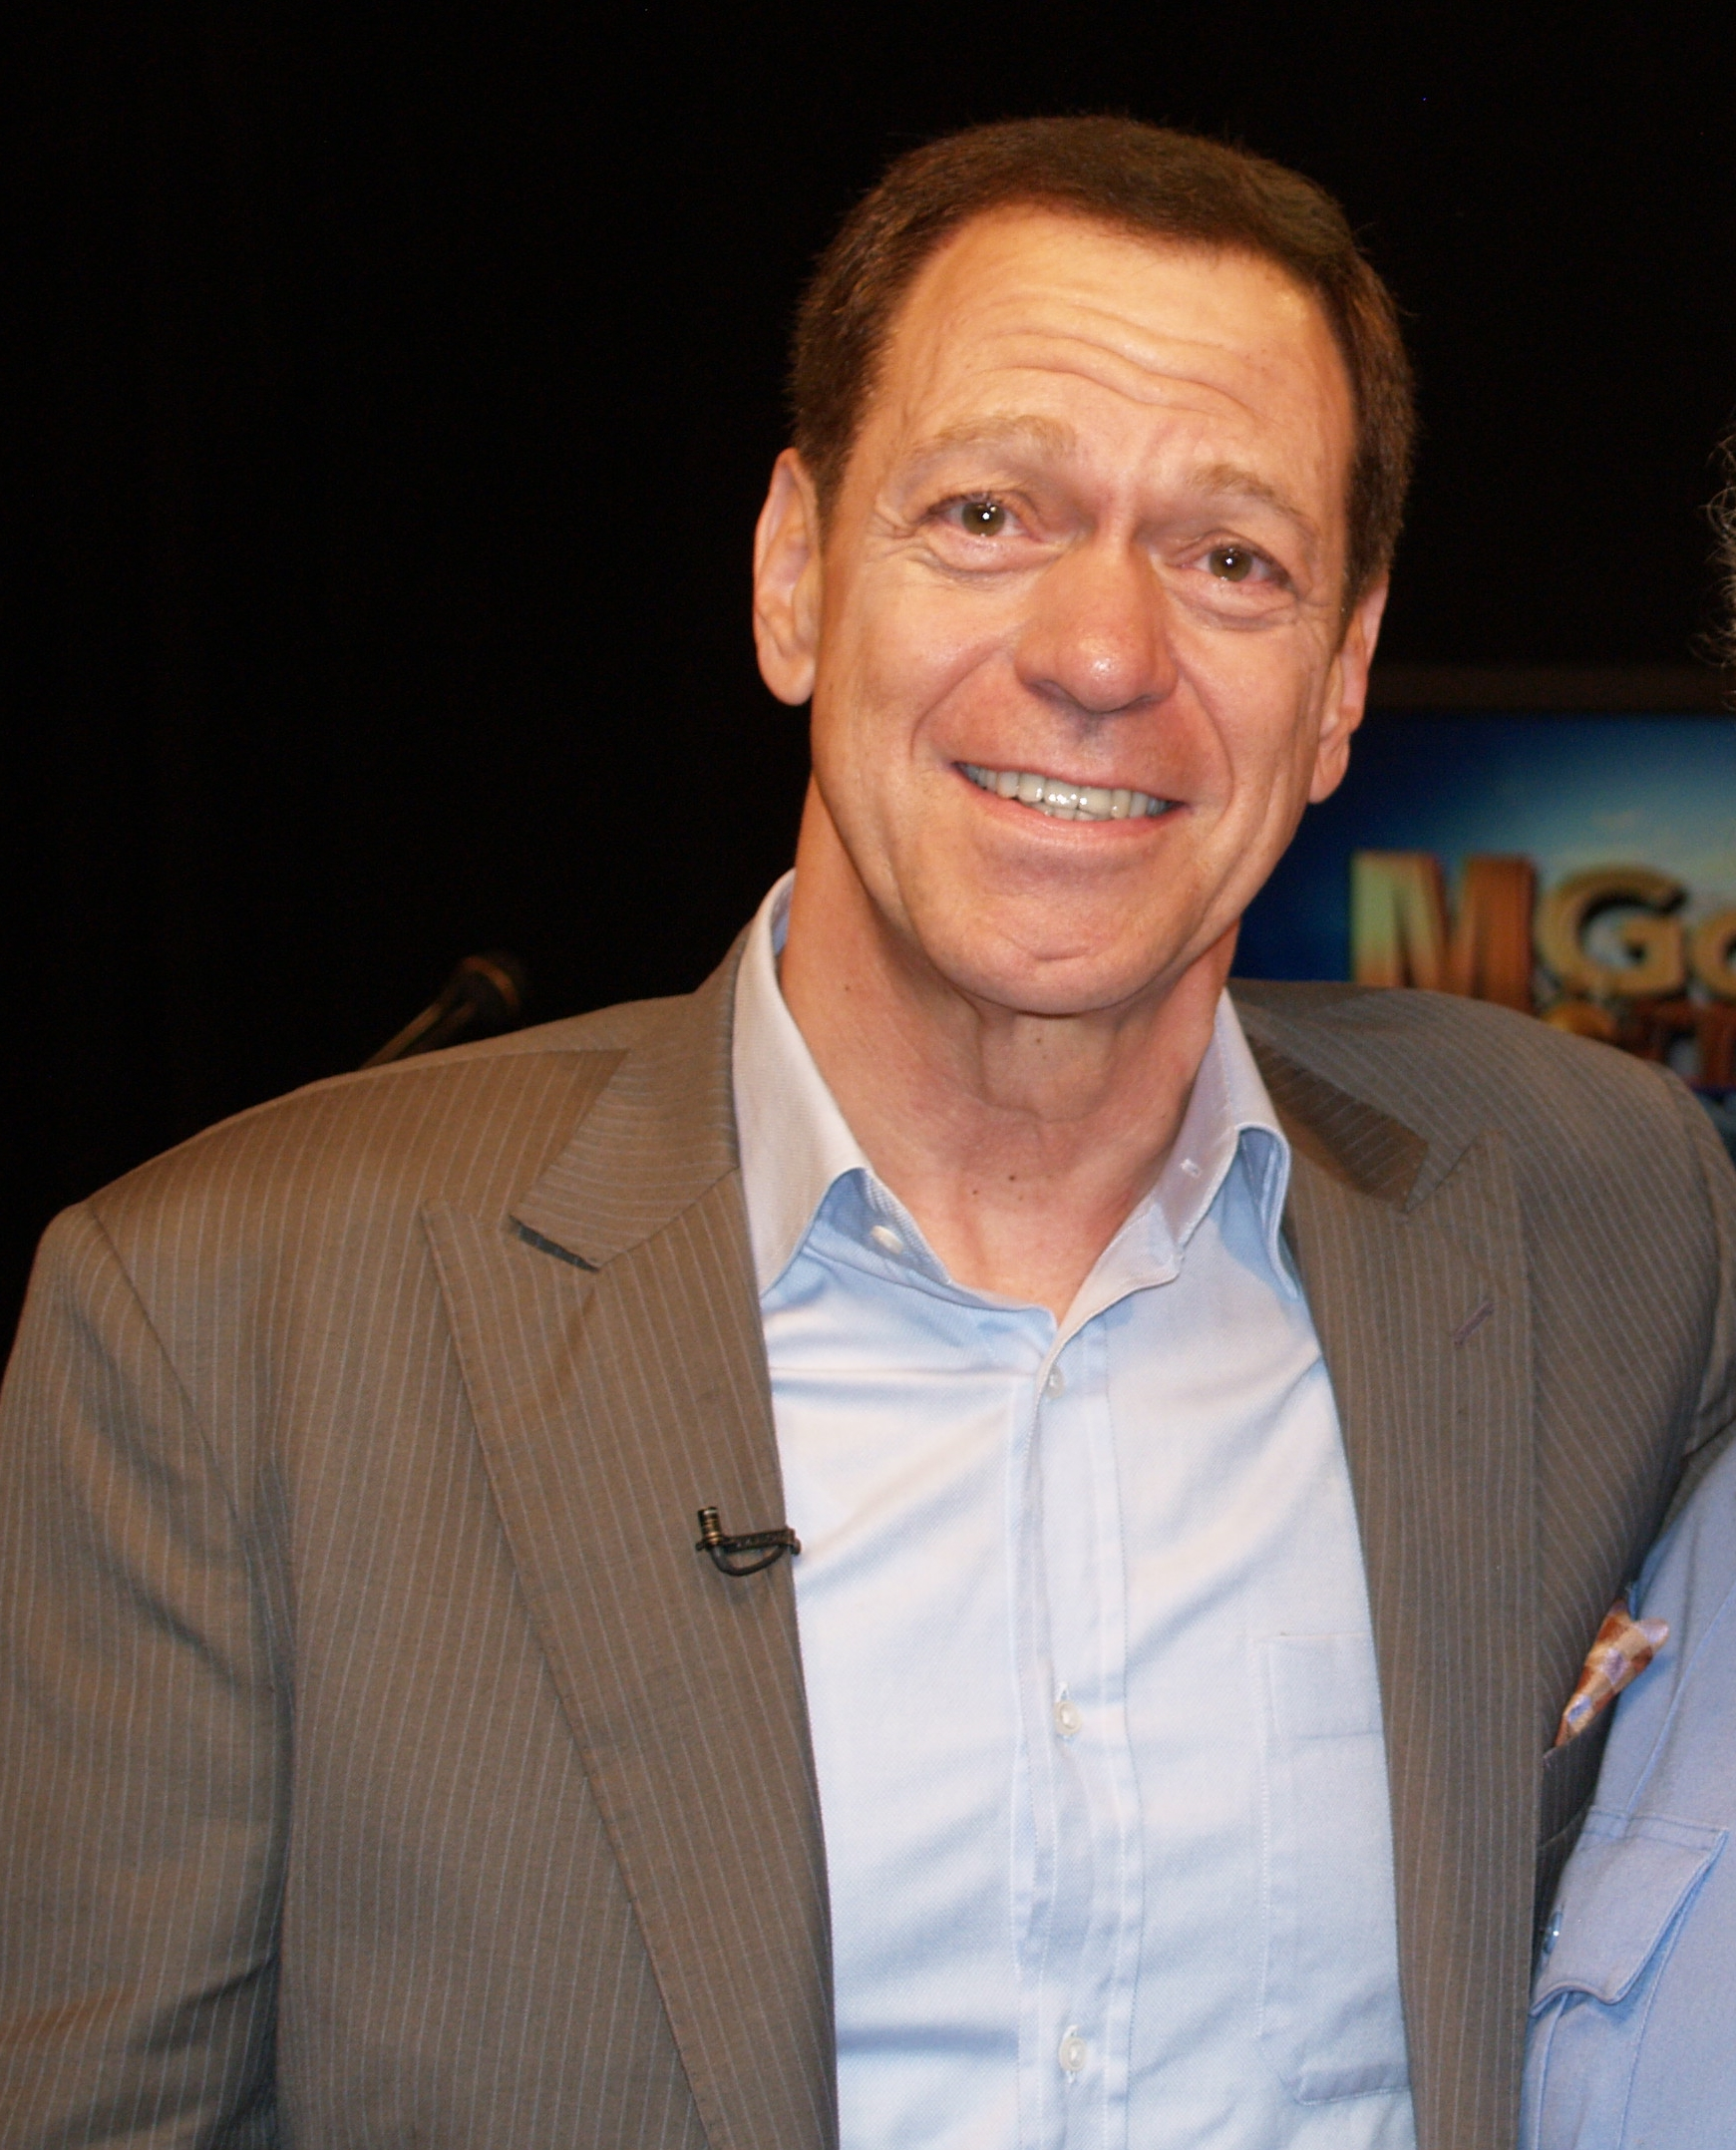 The 67-year old son of father (?) and mother(?) Joe Piscopo in 2018 photo. Joe Piscopo earned a  million dollar salary - leaving the net worth at 3 million in 2018